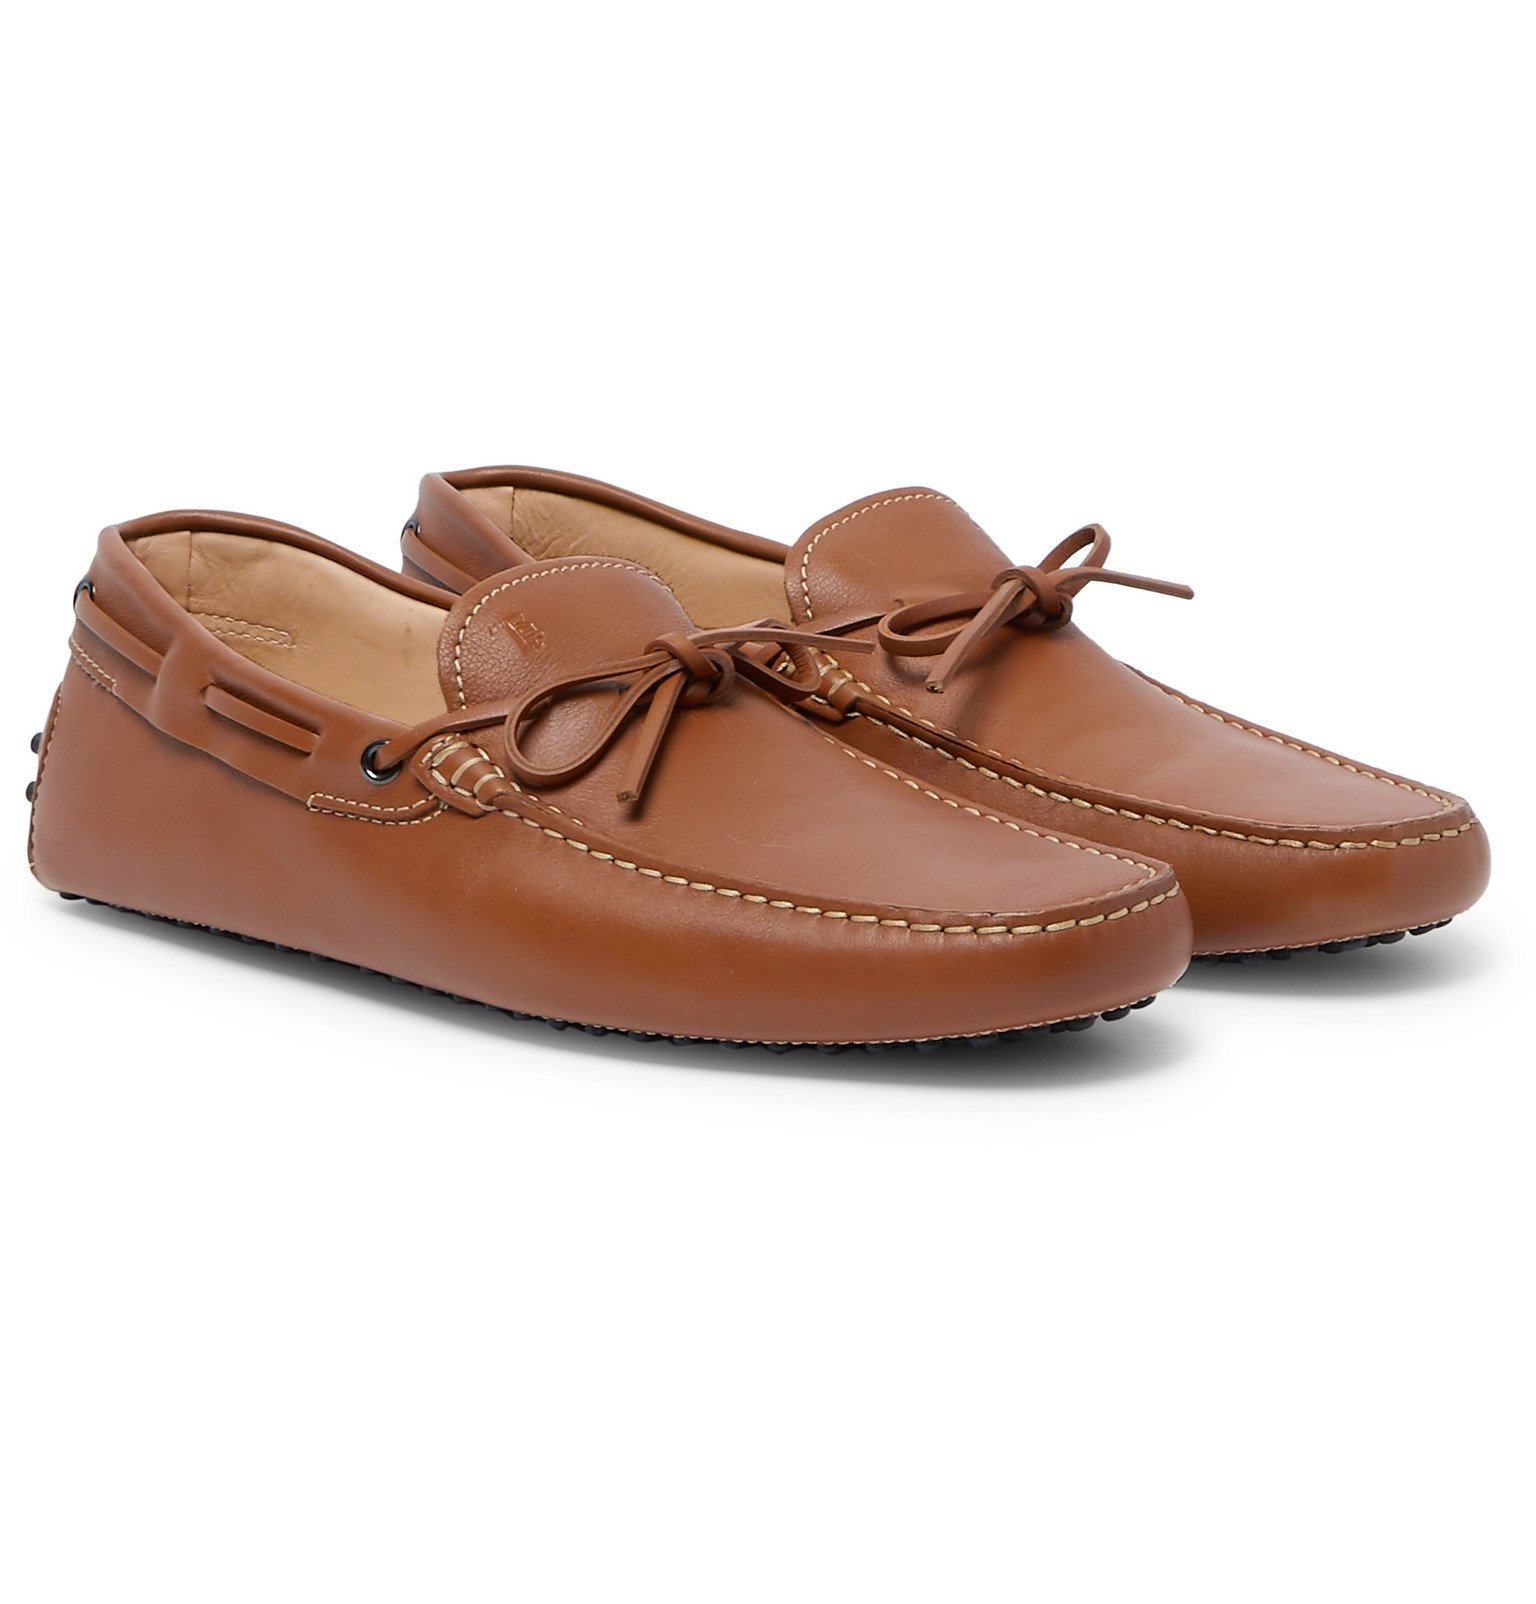 Tod's - Gommino Leather Driving Shoes - Brown